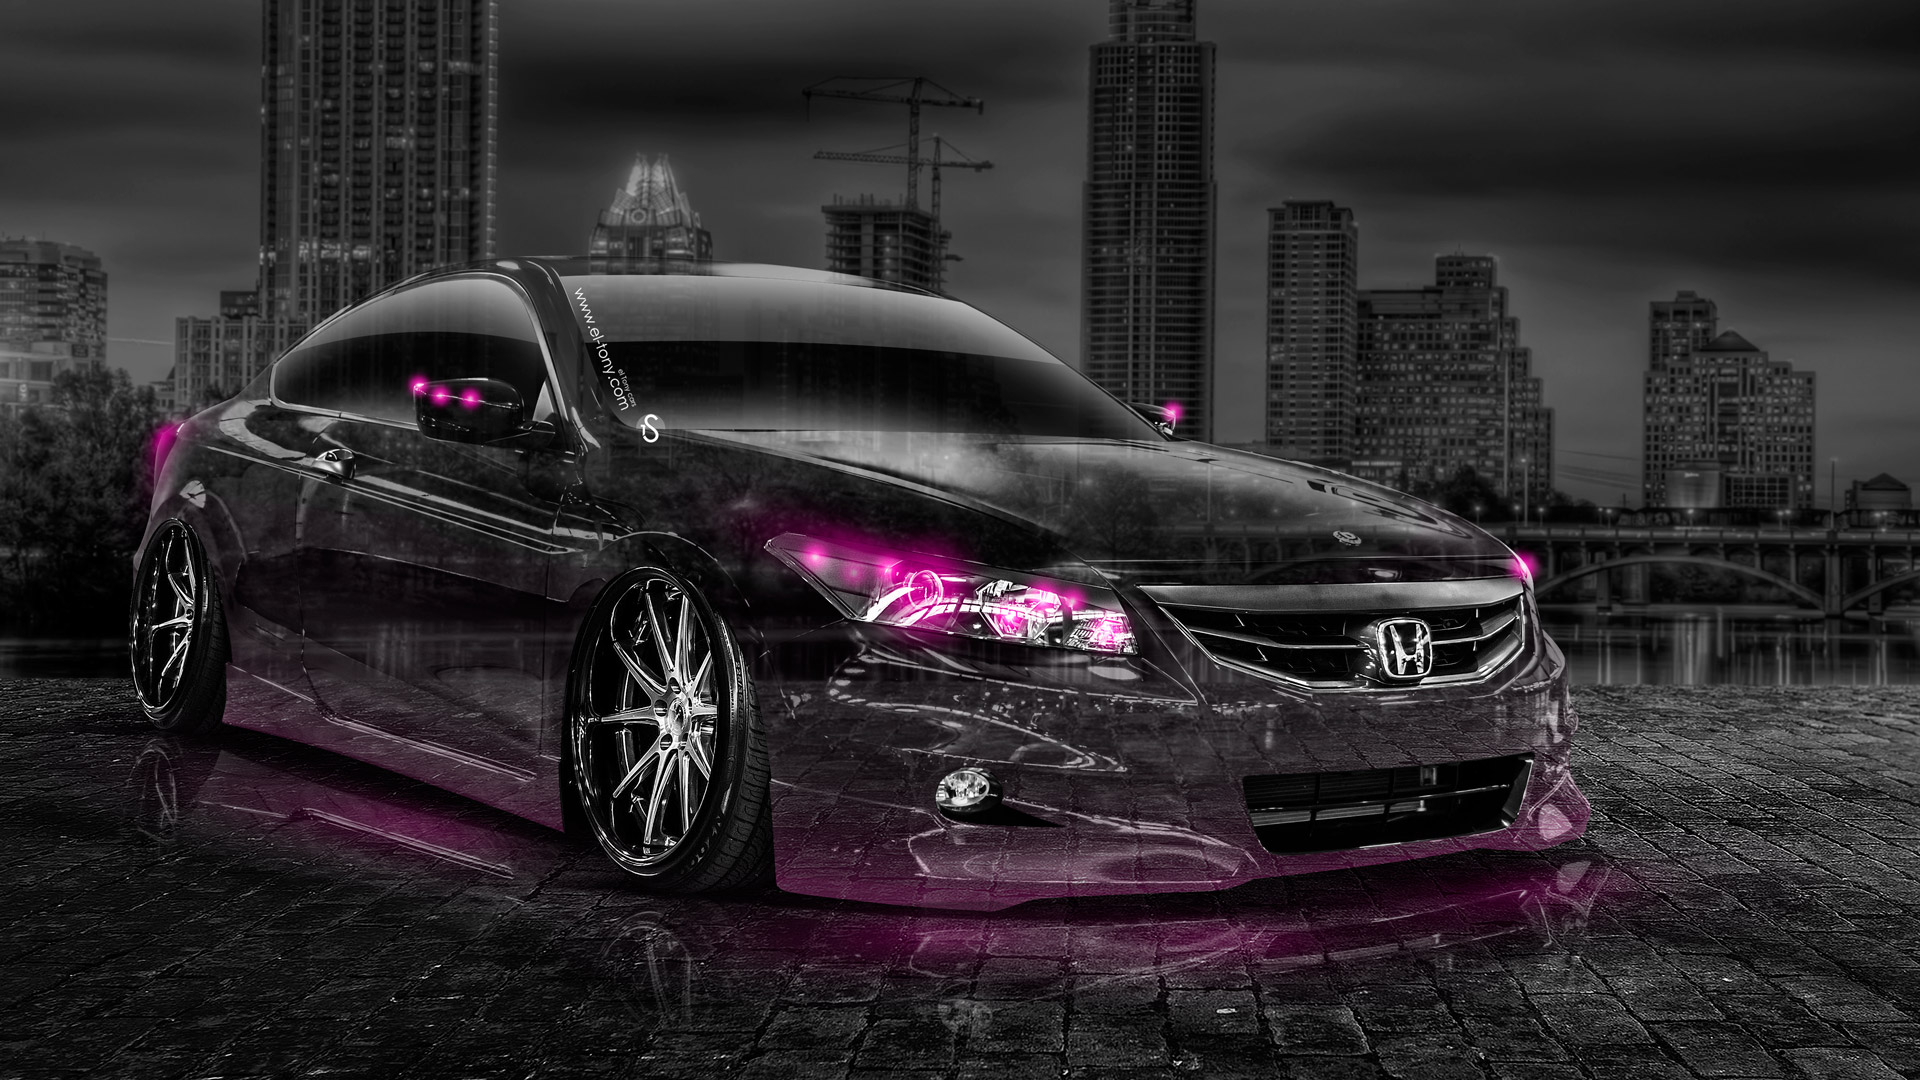 Honda Accord Coupe JDM Crystal City Car 2014 | el Tony